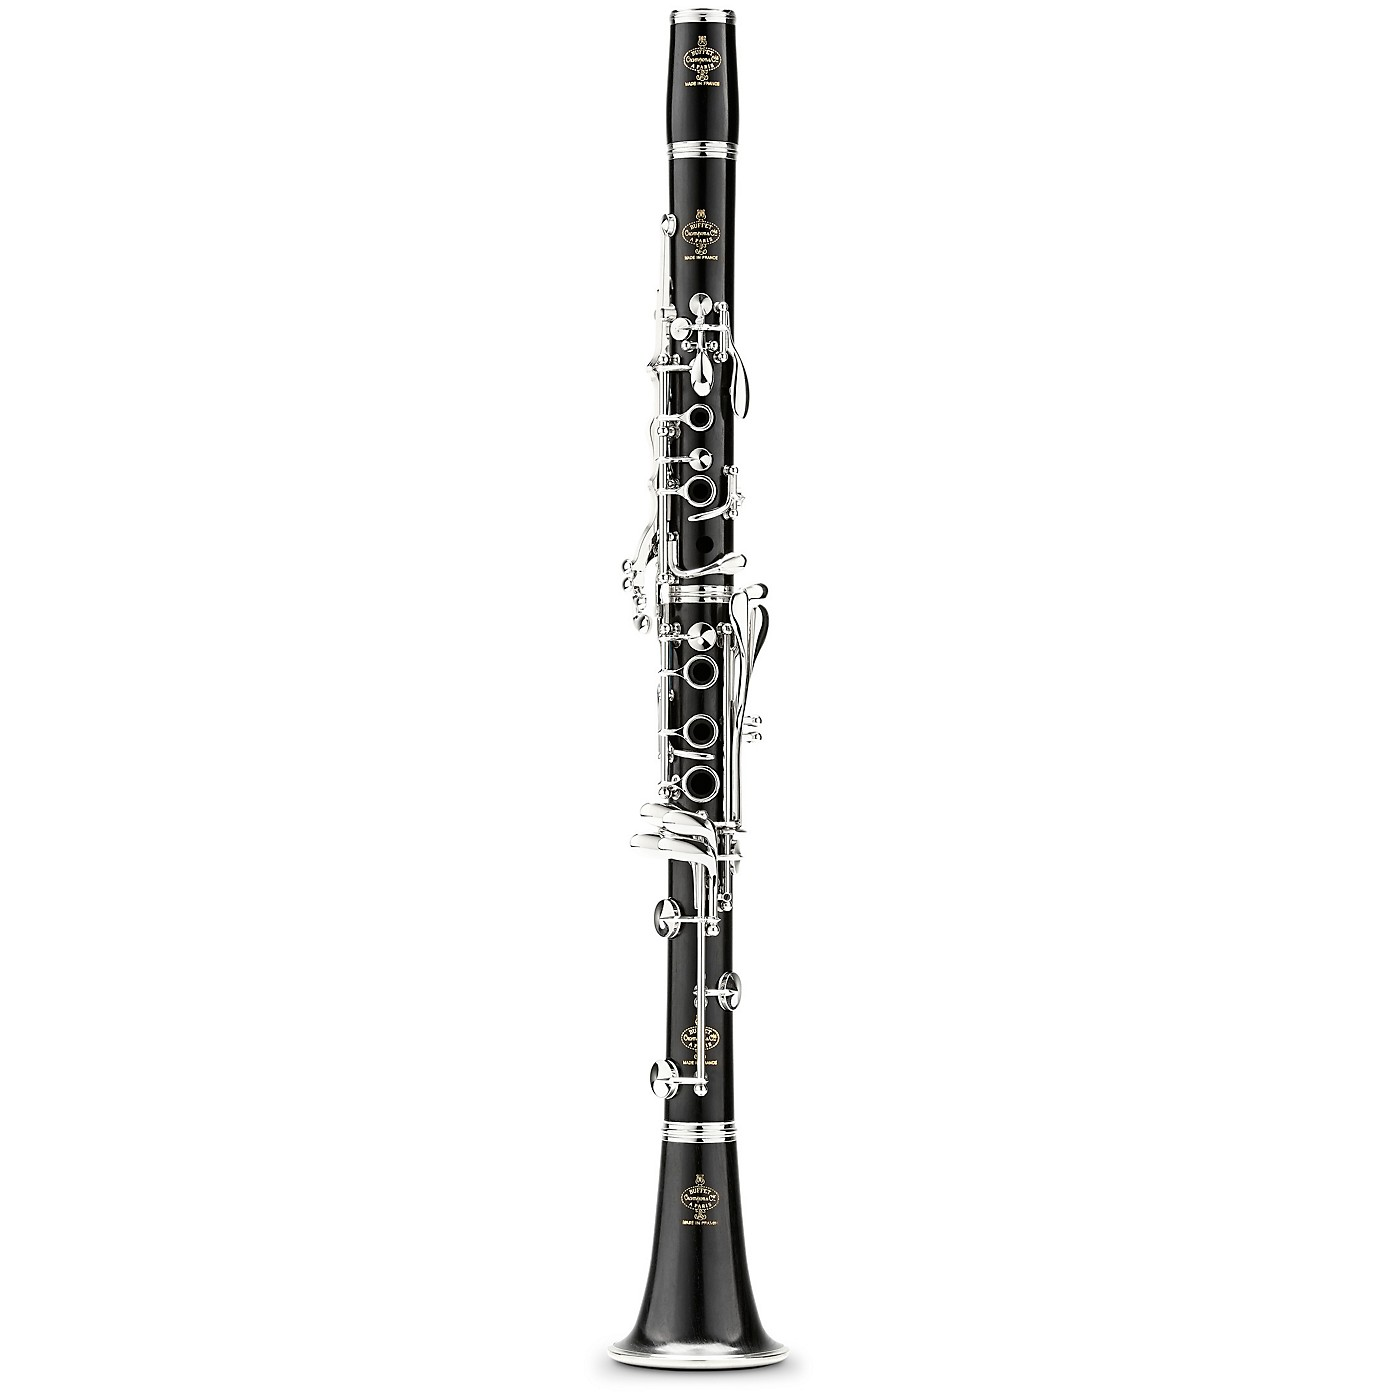 Buffet Crampon R13 Professional Bb Clarinet with Nickel-Plated Keys thumbnail